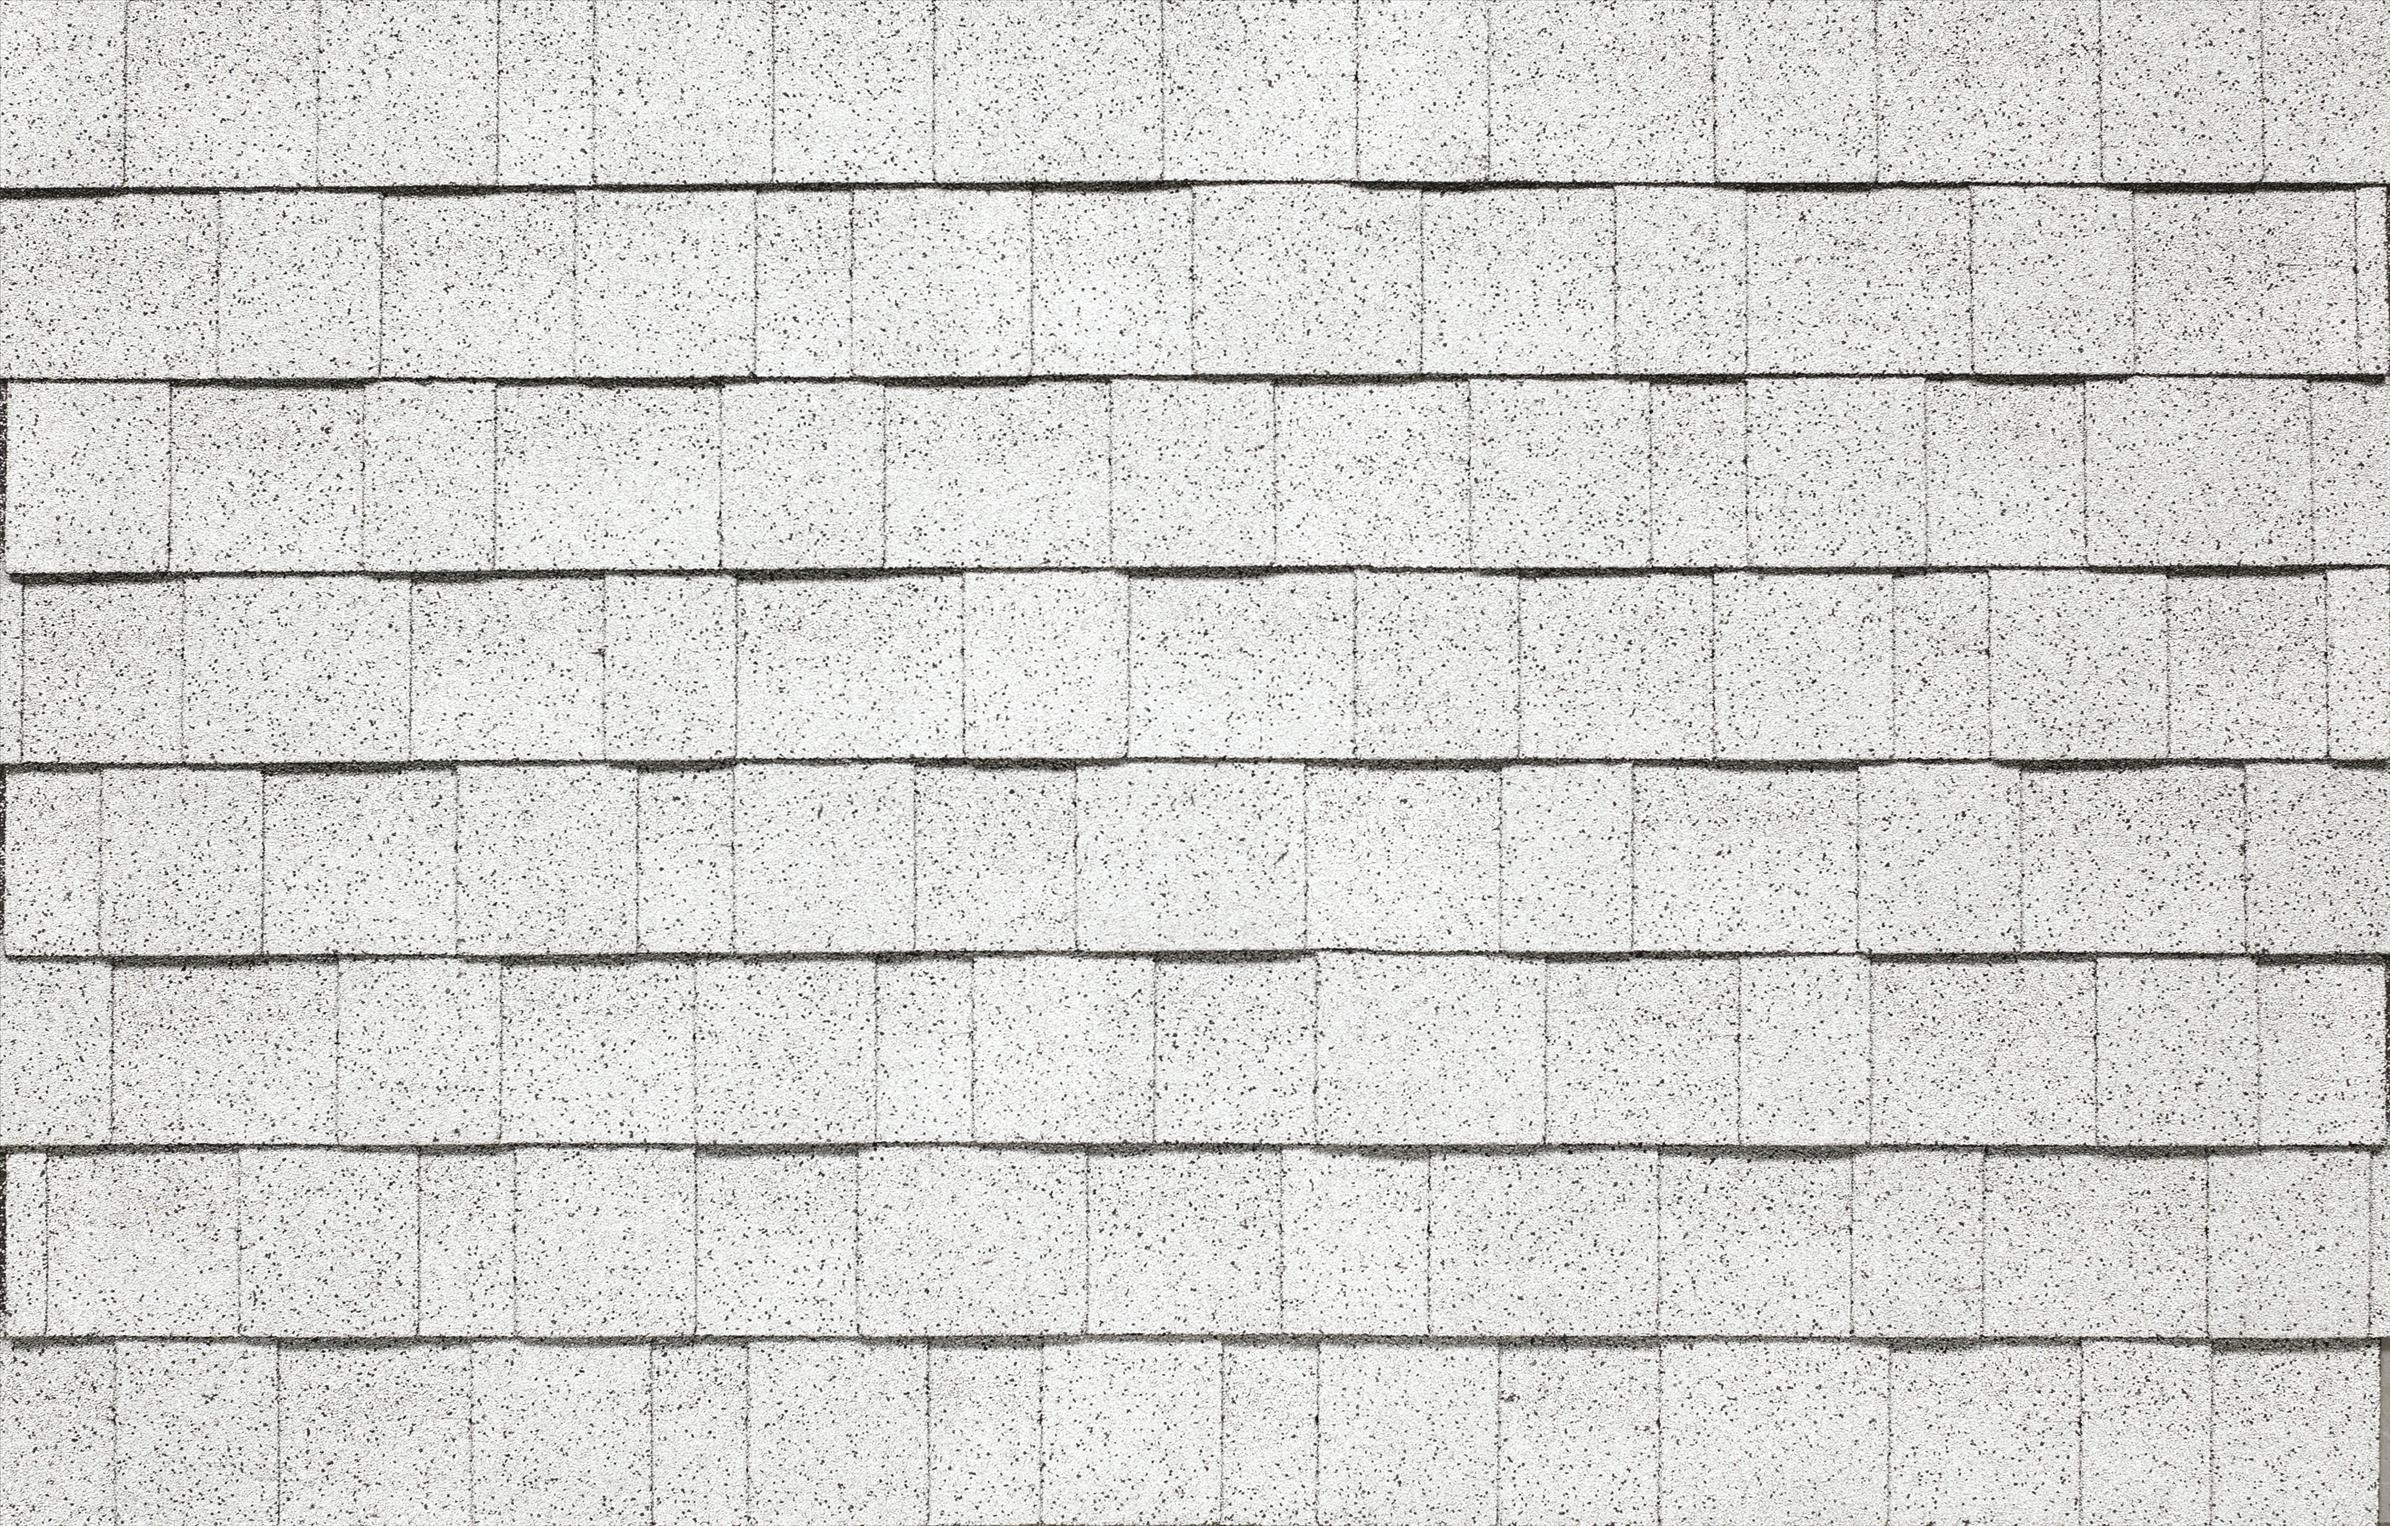 asphalt_shingle_039.jpg